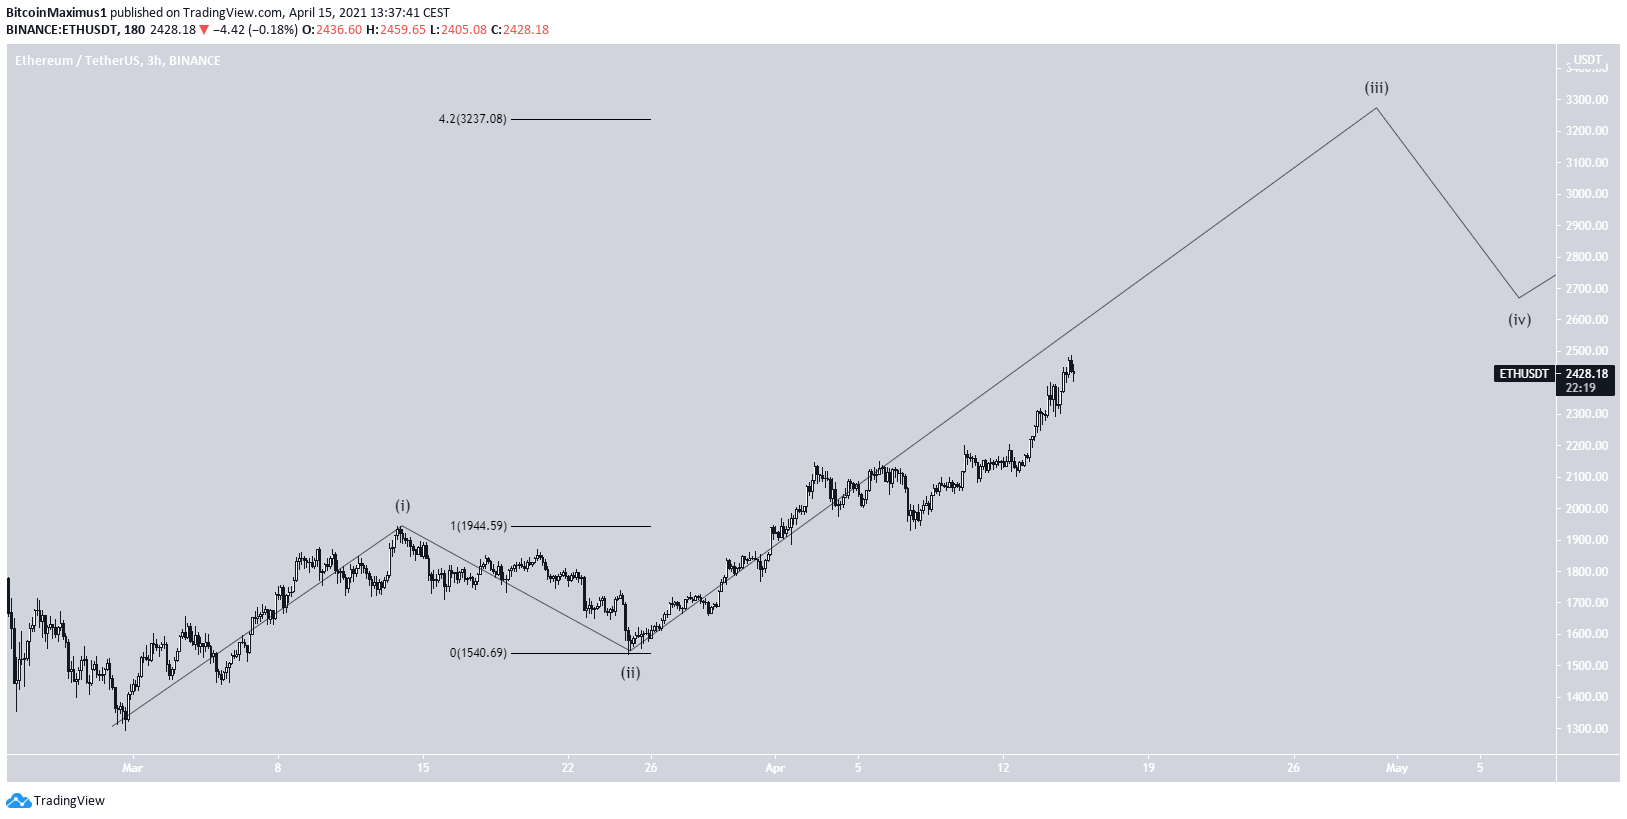 ETH Sub-wave Count